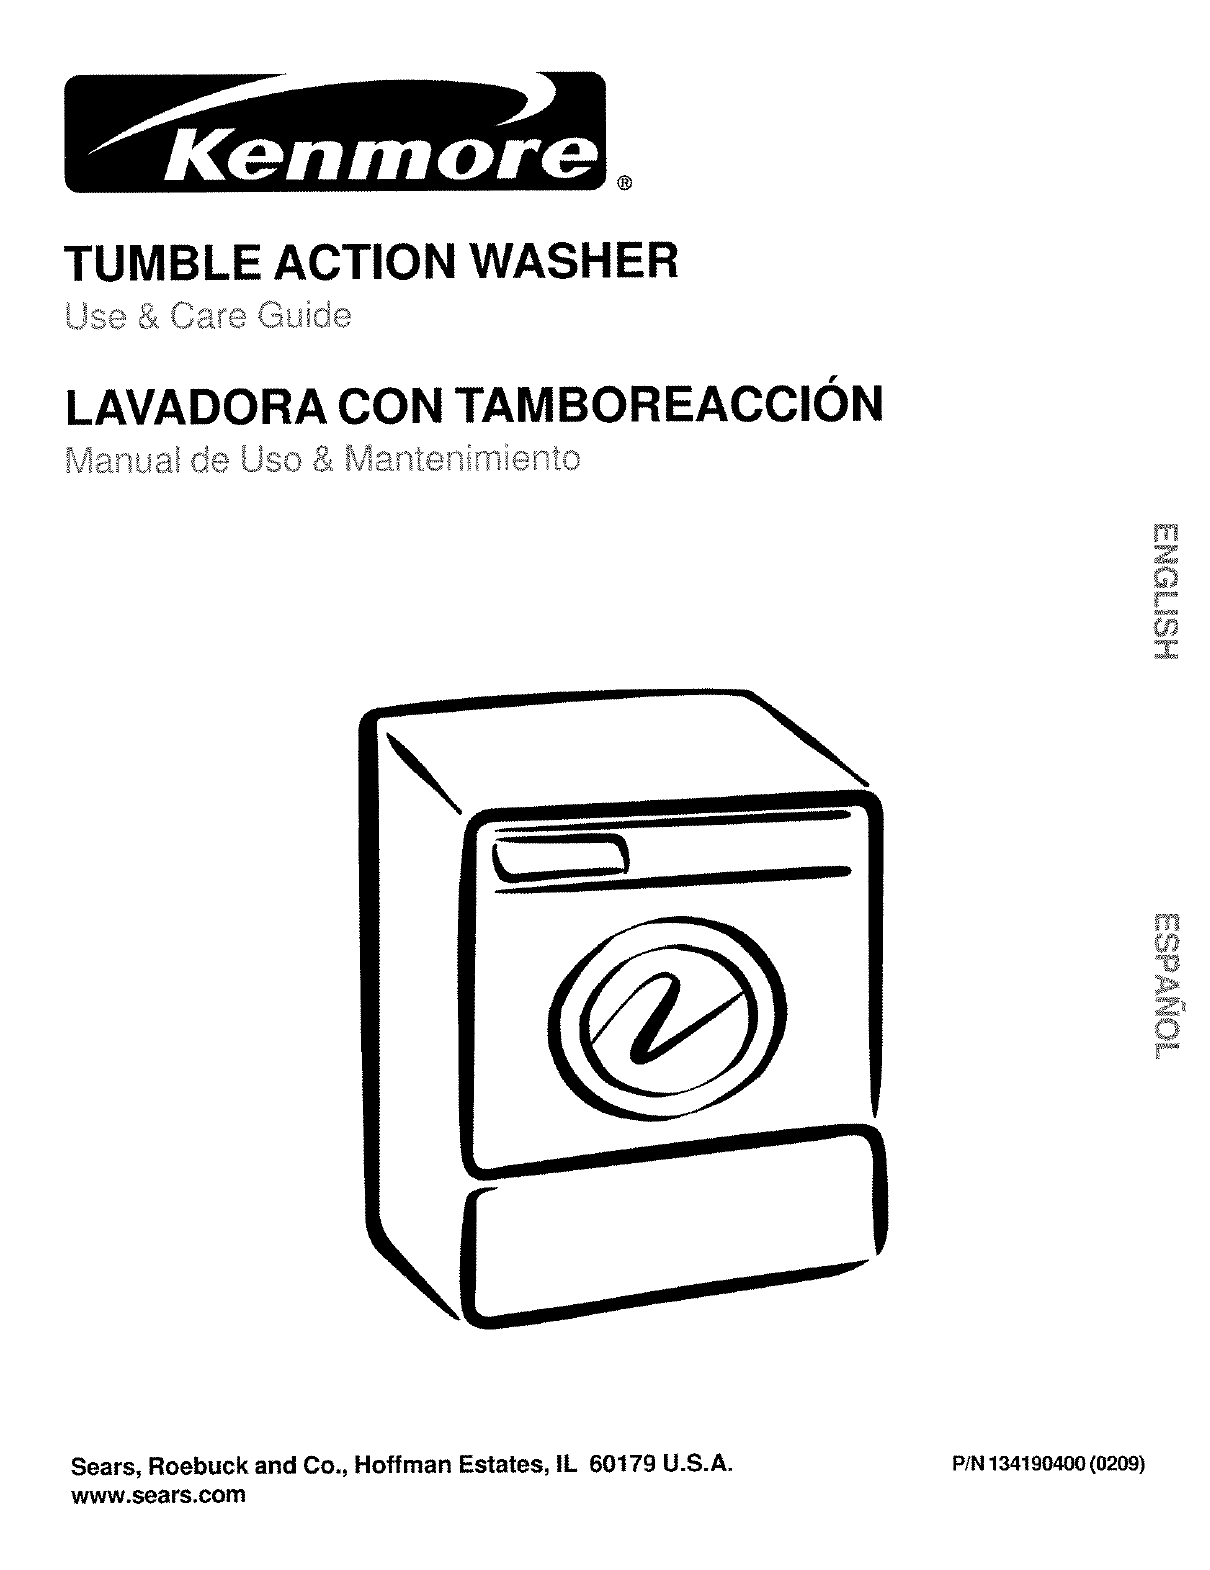 kenmore washer 134190400 0209 user guide manualsonline com rh audio manualsonline com Kenmore Stackable Washer Dryer kenmore super capacity 3.5 quiet tumble action washer manual